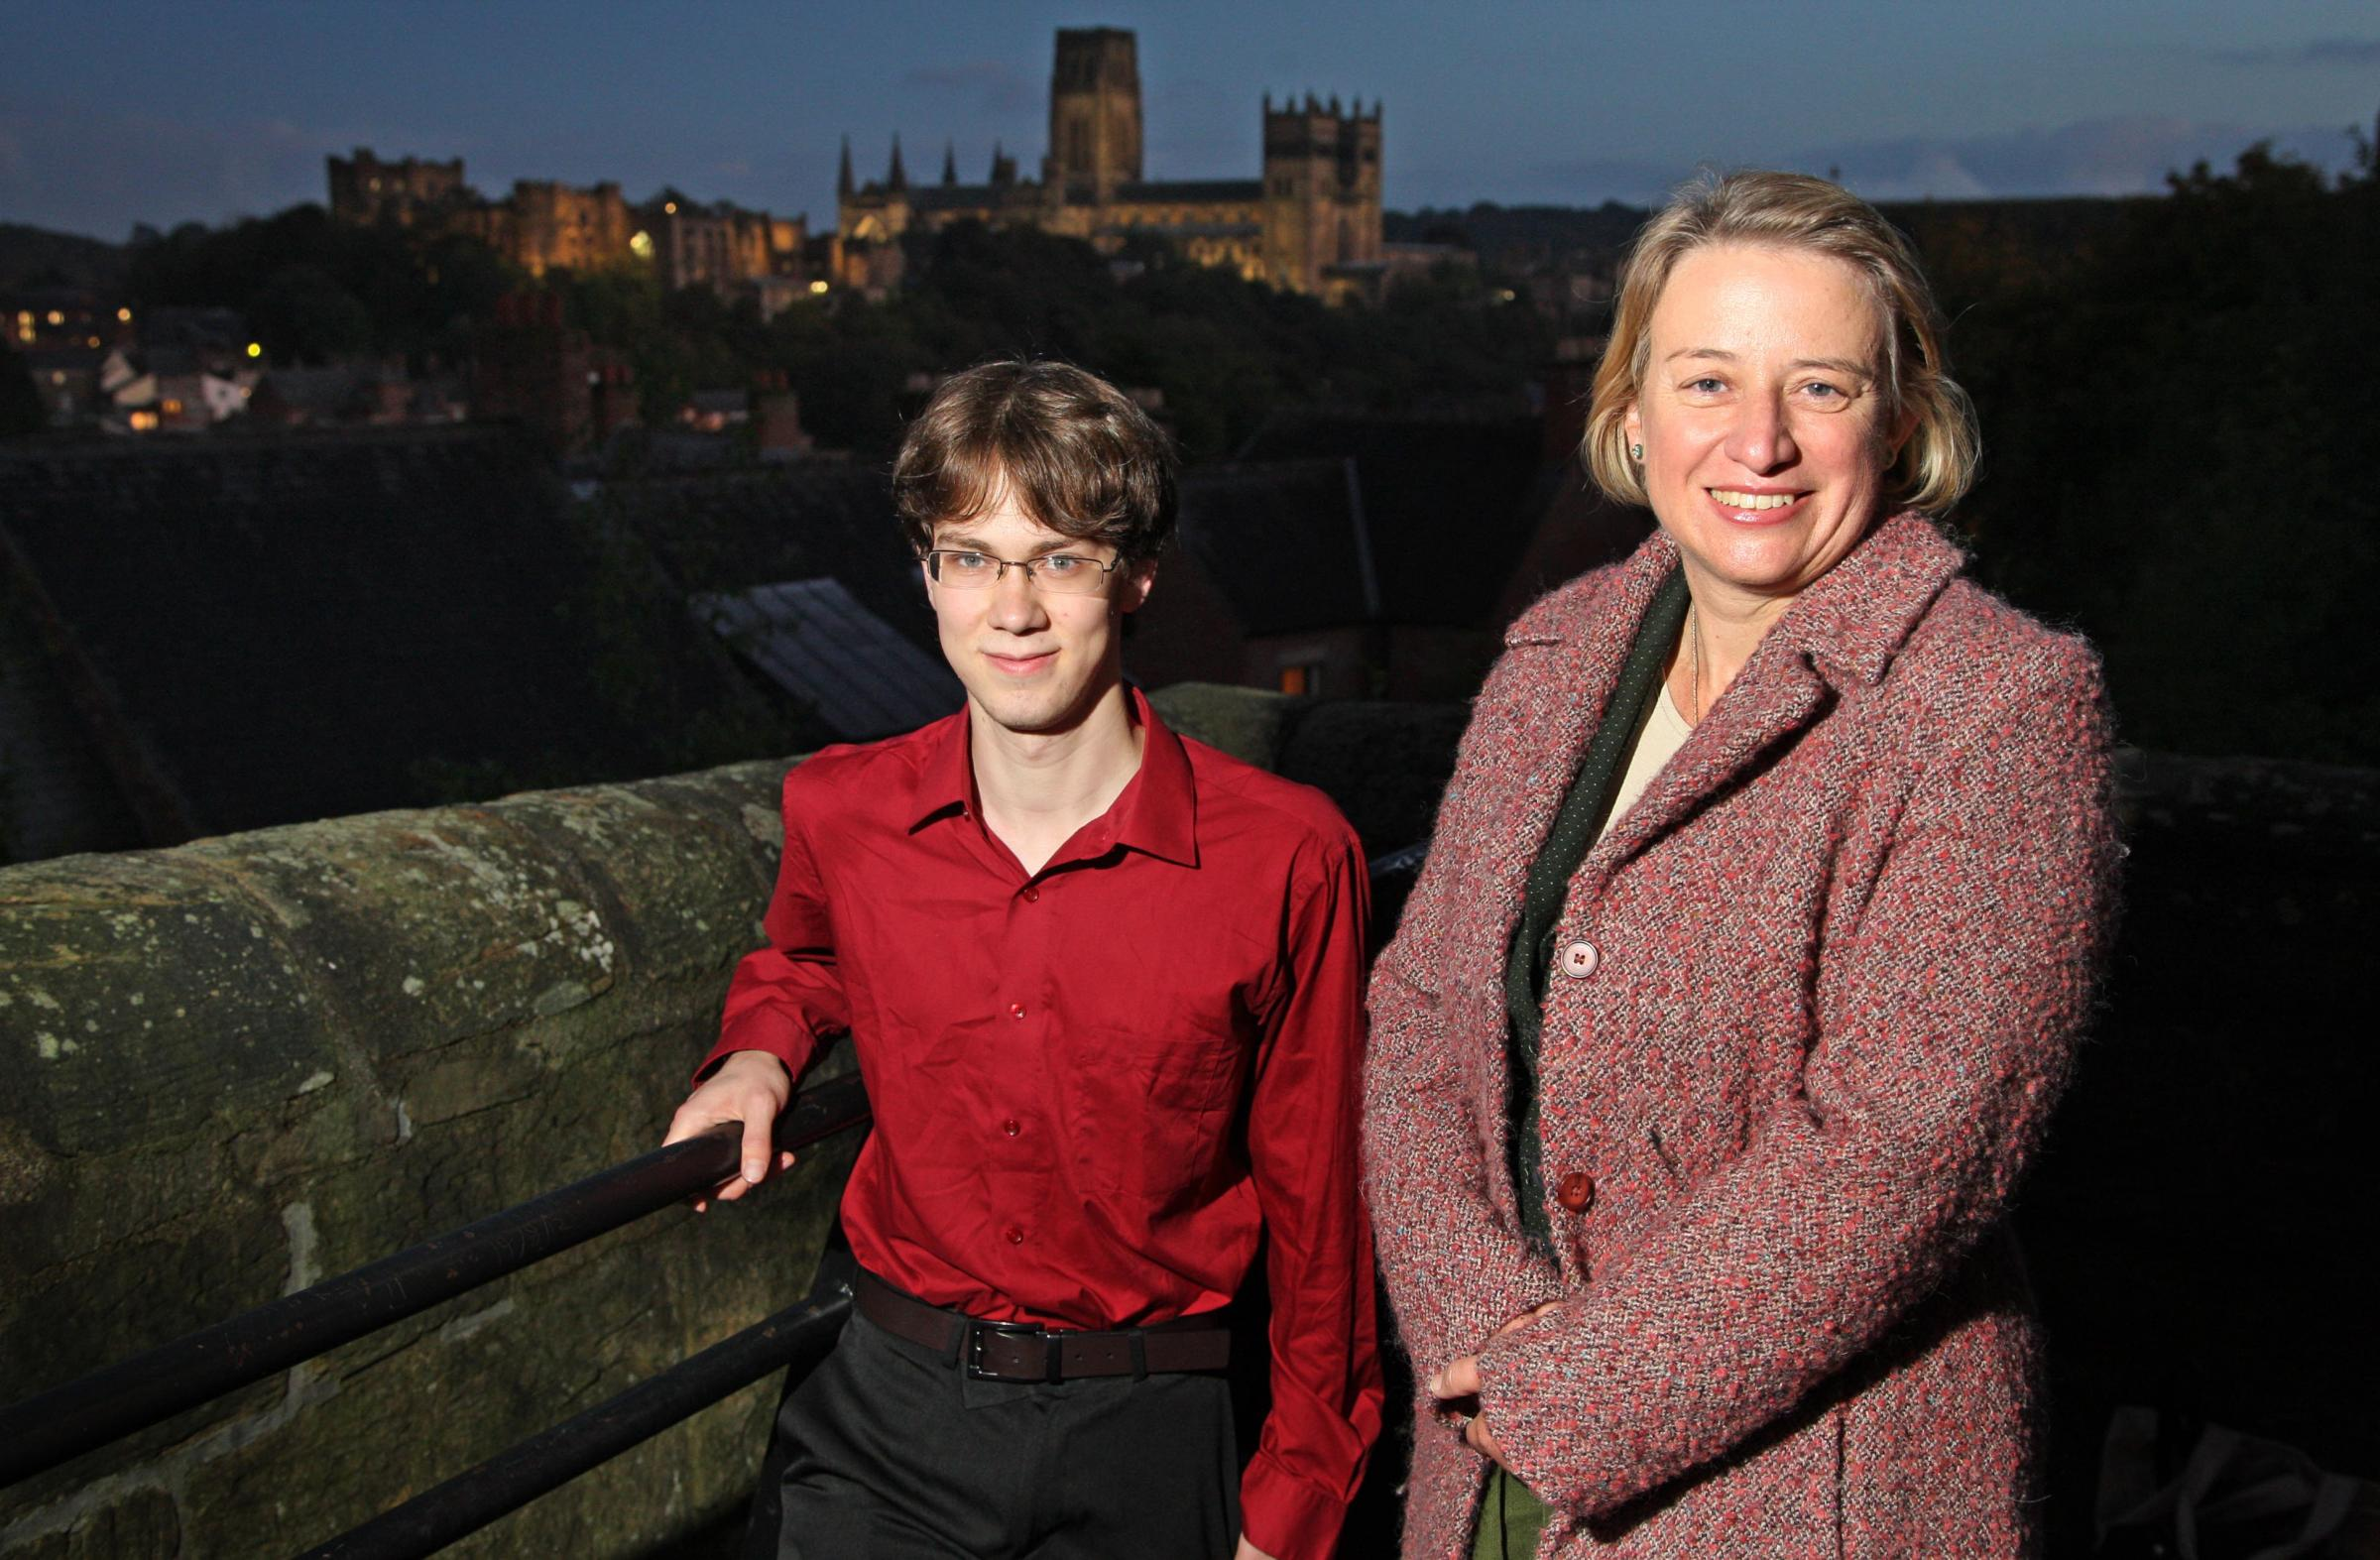 Natalie Bennett during a previous visit to Durham